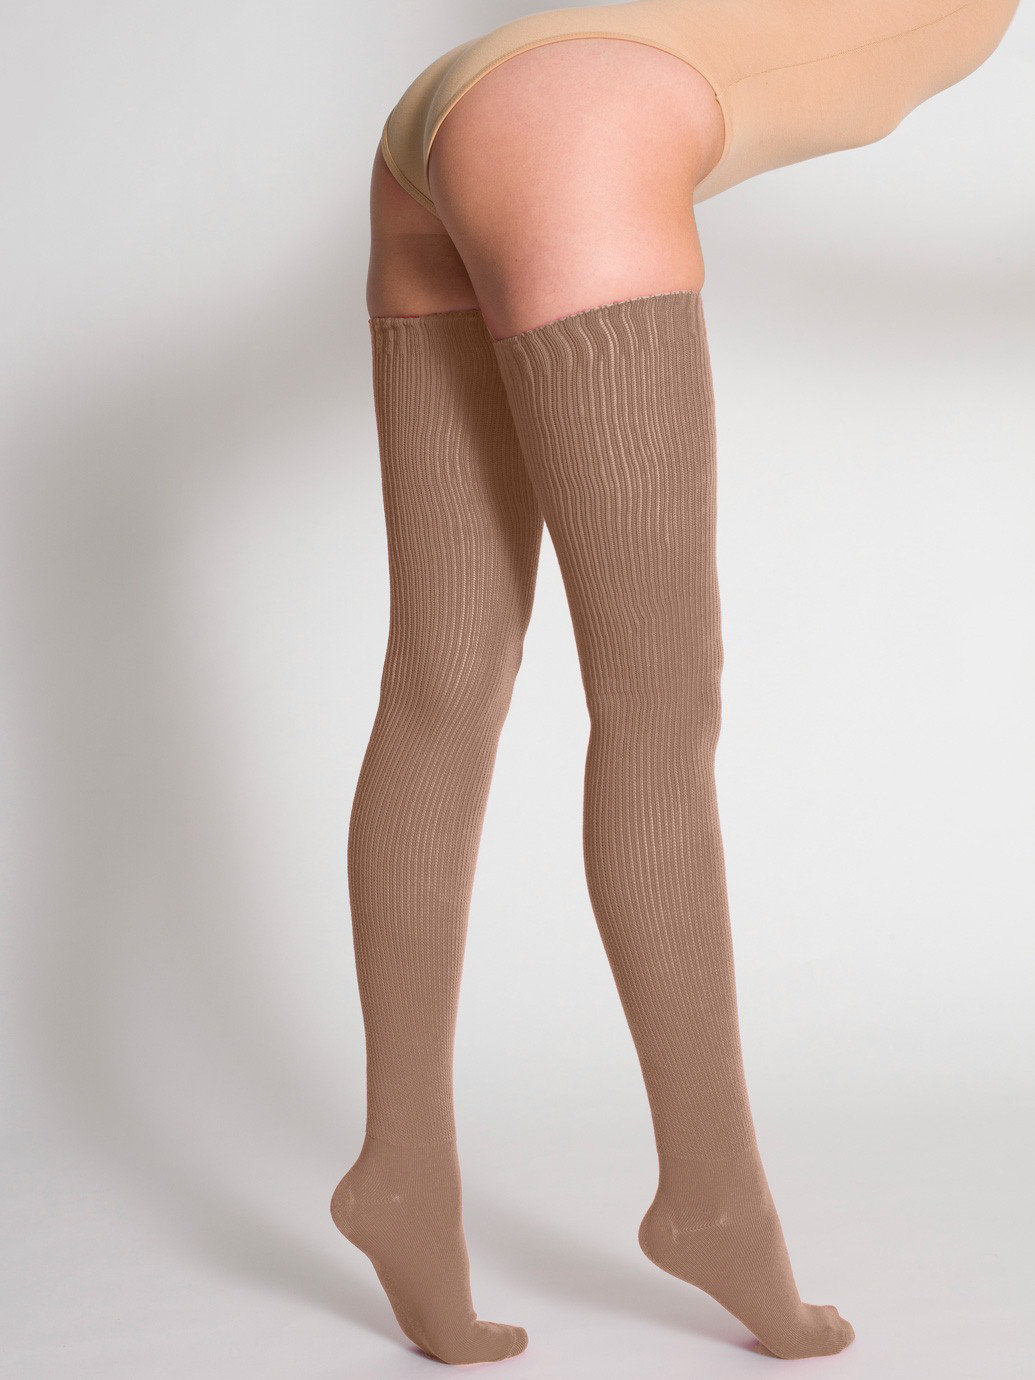 Cotton Solid Thigh-High Socks | American Apparel